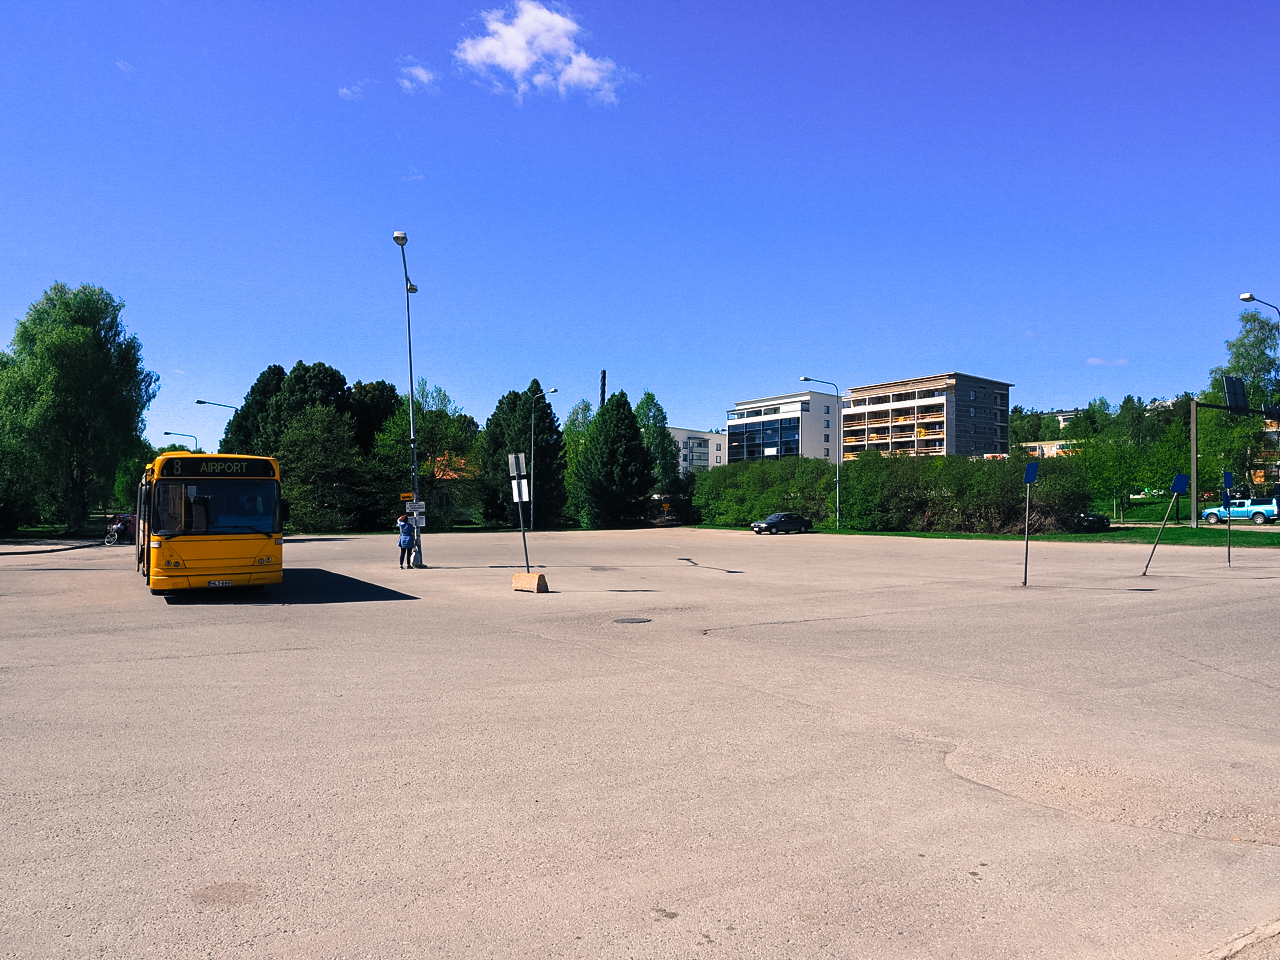 Rovaniemi bus station doesn't give you any indication of the 28 000 festival goers that are on their way.